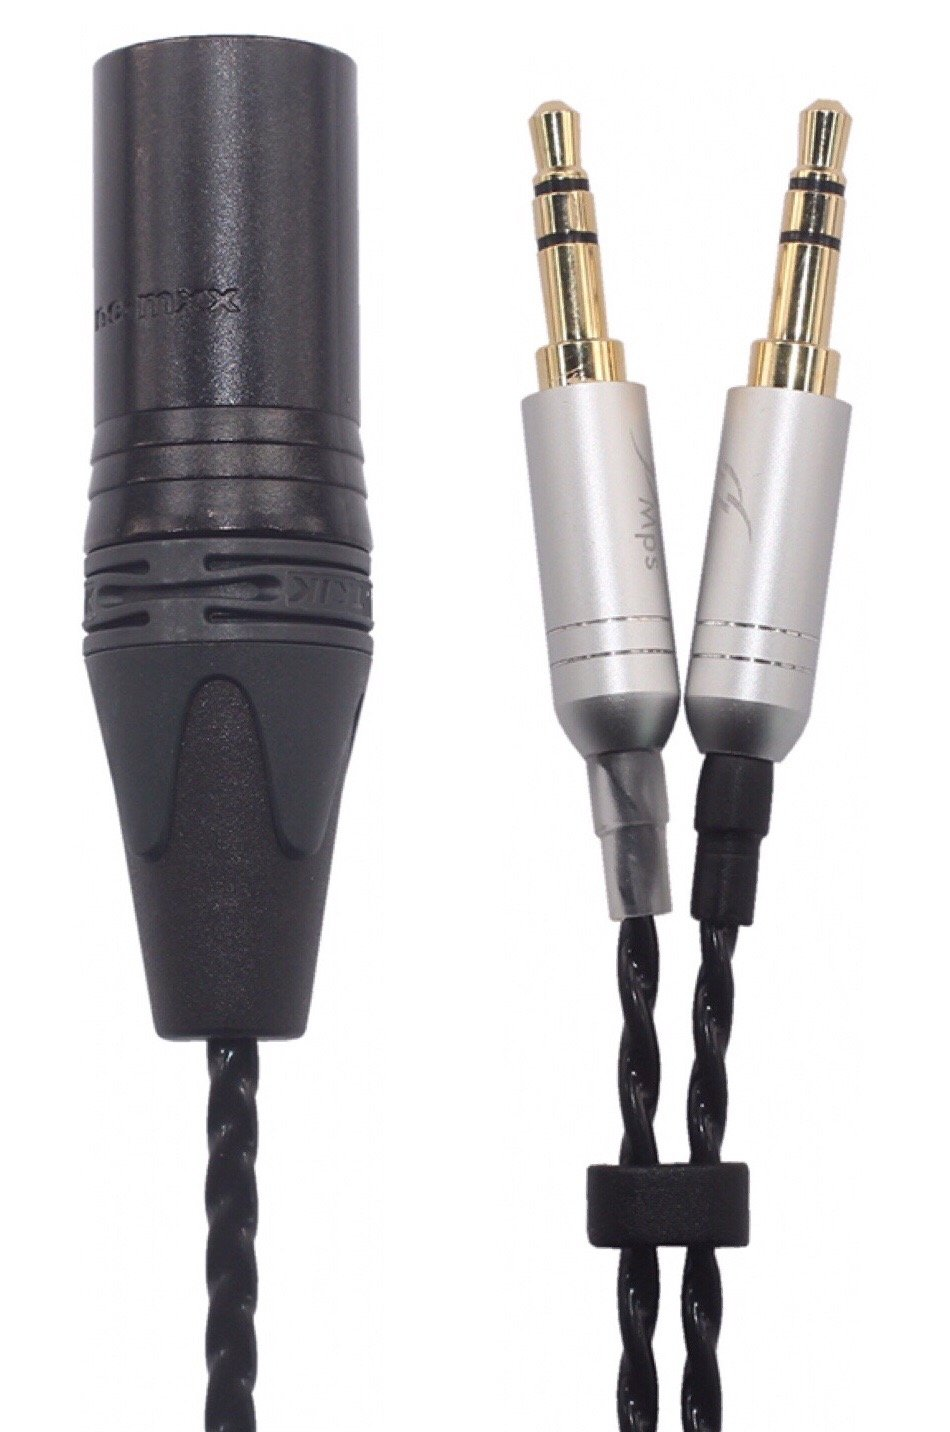 KK Cable MDS-4P Compatible Replacement Audio Upgrade Cable for T1 II, T5 Headphone, 4-pin XLR Male MDS-4P (4.9ft (1.5M)) 4334426562